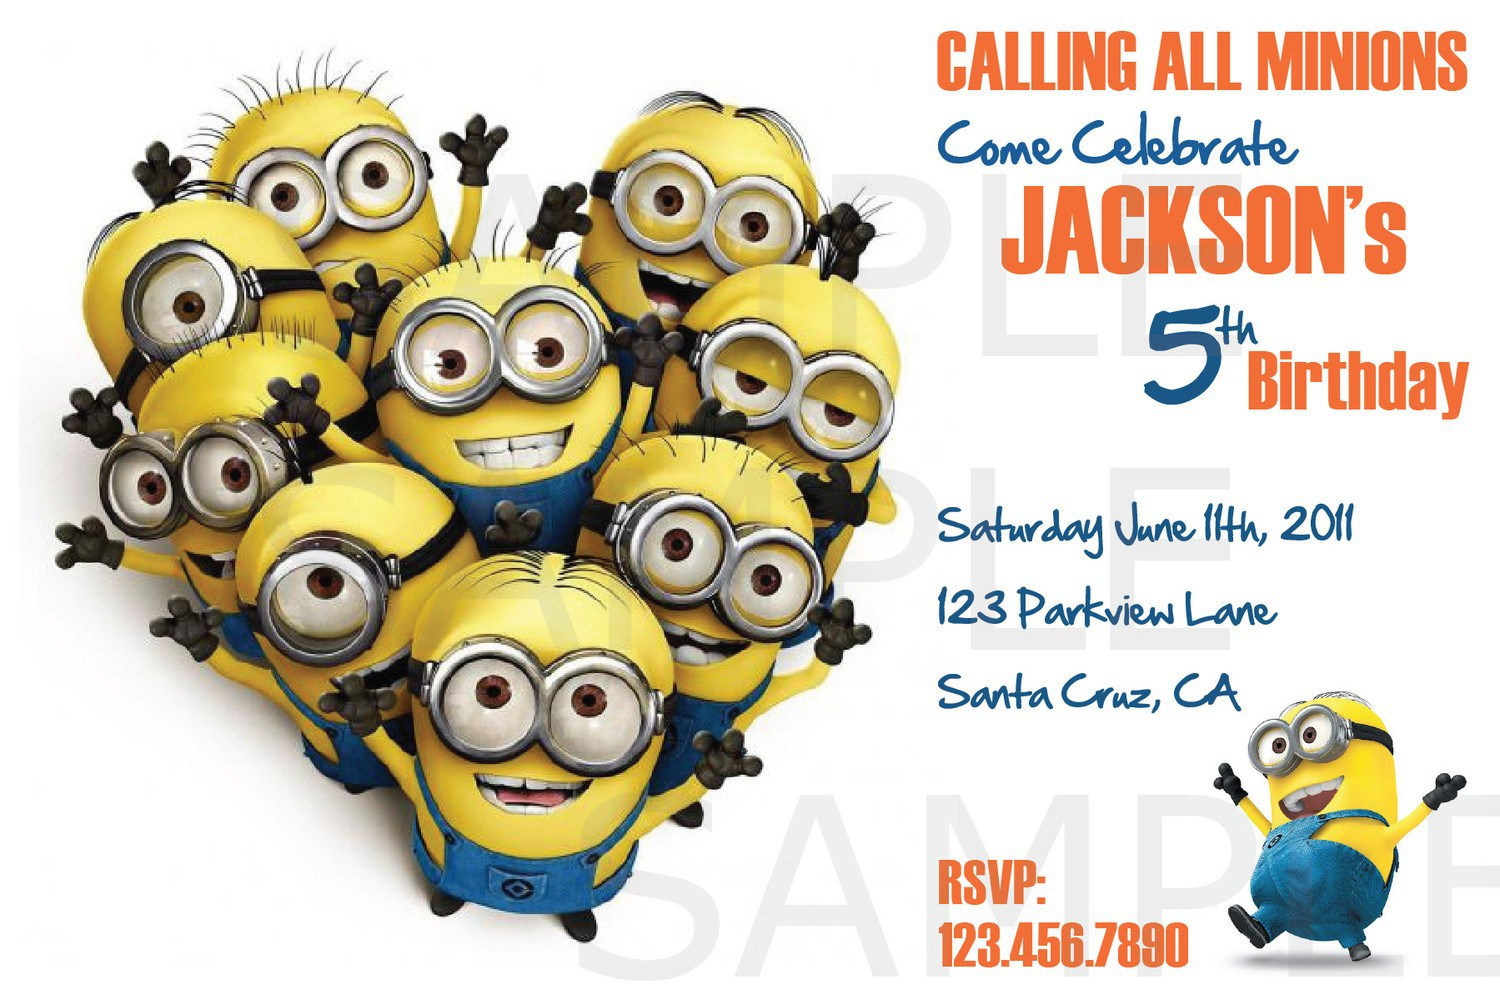 minions birthday invitation card template ; others-general-minions-birthday-party-invitation-card-for-kids